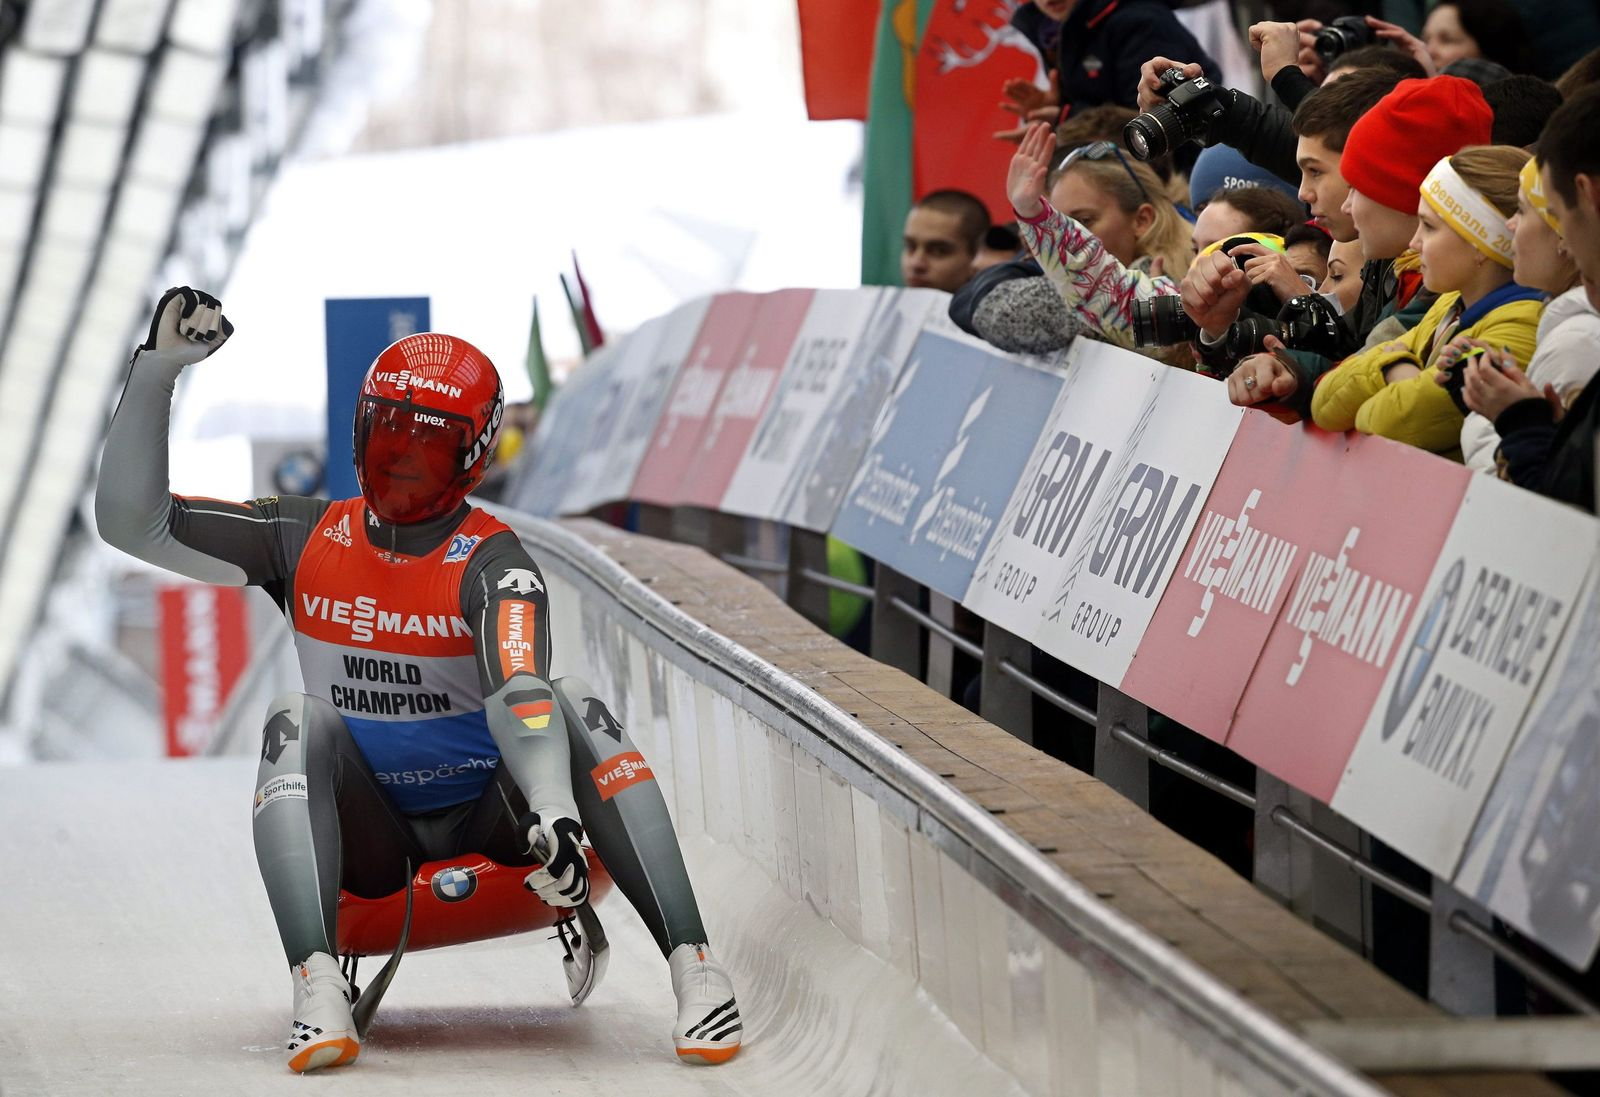 Luge World Cup in Sochi